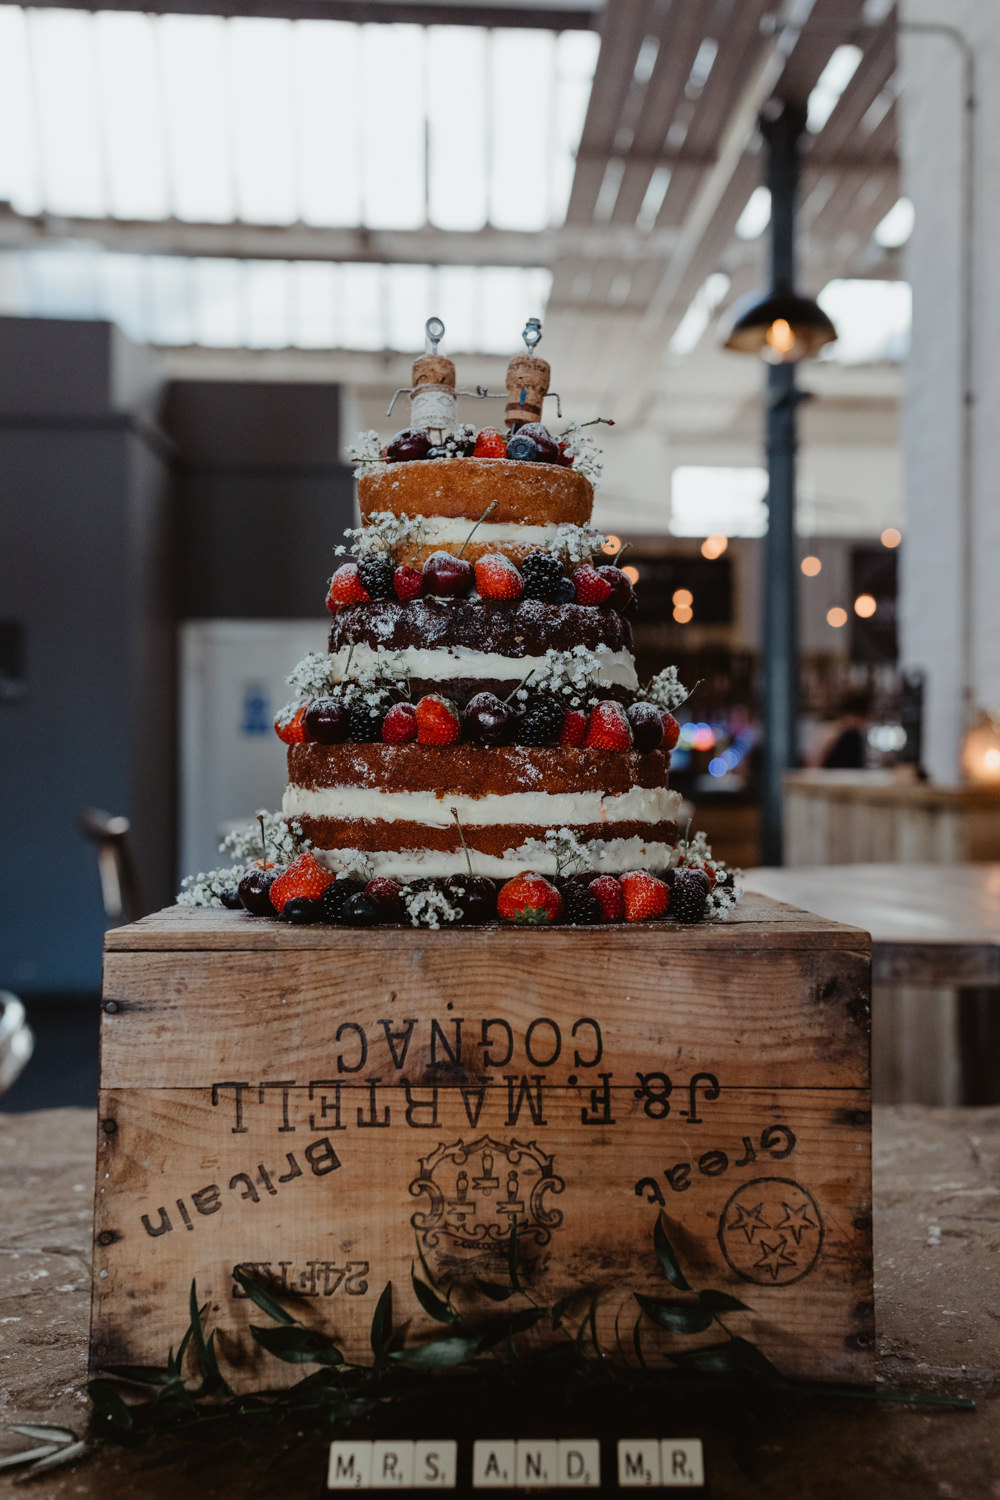 Naked Cake Berries Flowers Topper Box Crate Stand Sponge Layer Arches Dean Clough Wedding Stevie Jay Photography